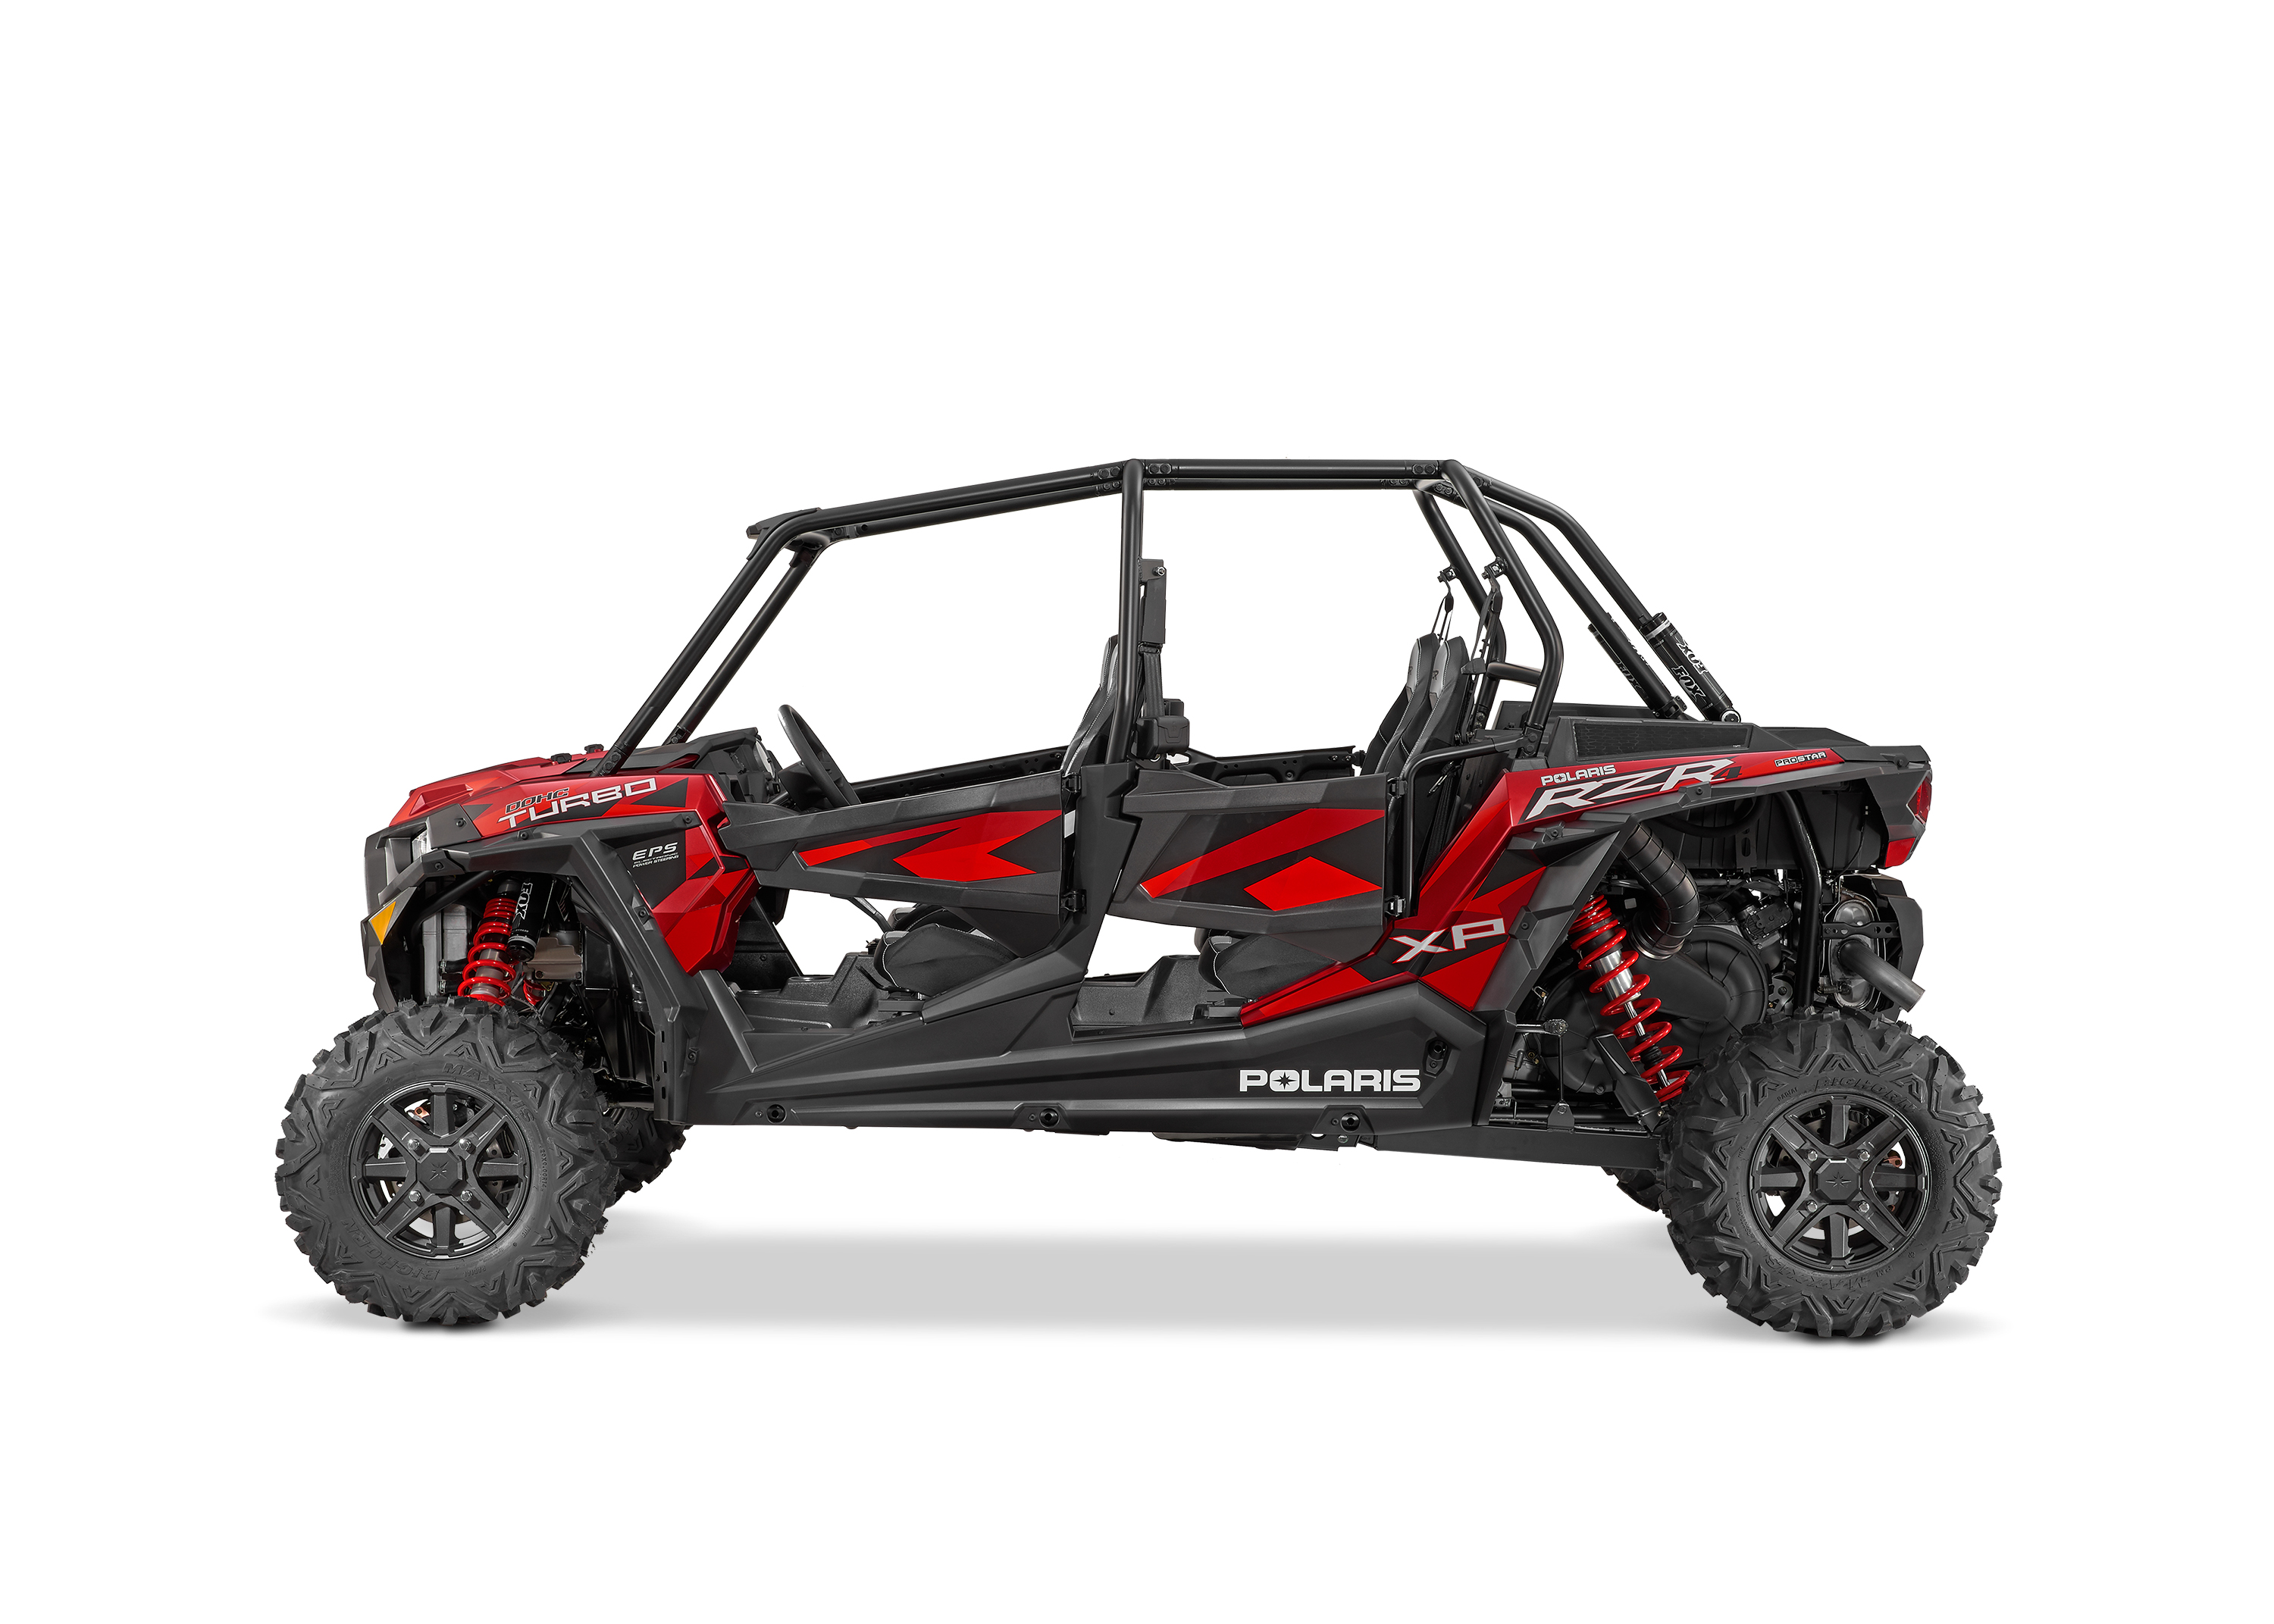 Polaris Recalls Rzr Xp Turbo Recreational Off Highway Vehicles Due To Fire Hazard Severe Burn Injuries Includes Previously Recalled Rovs